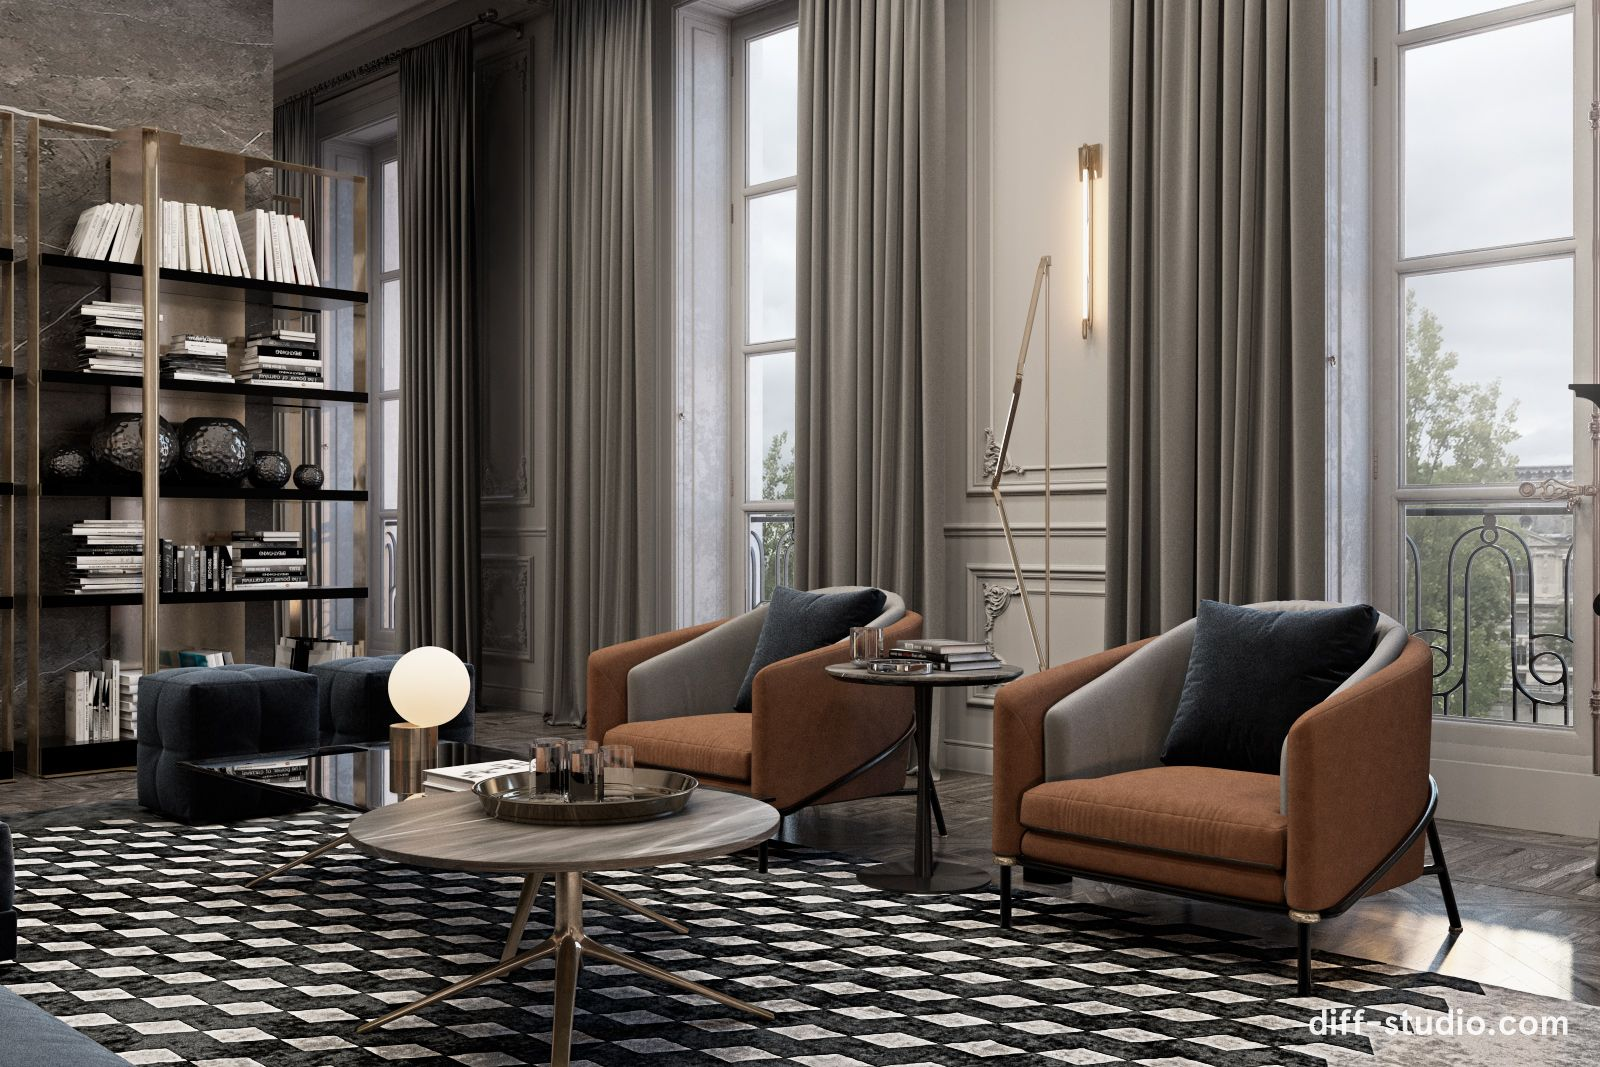 Apartment Overlooking The Louvre Luxury Apartments Interior Apartment Interior Living Room Inspiration